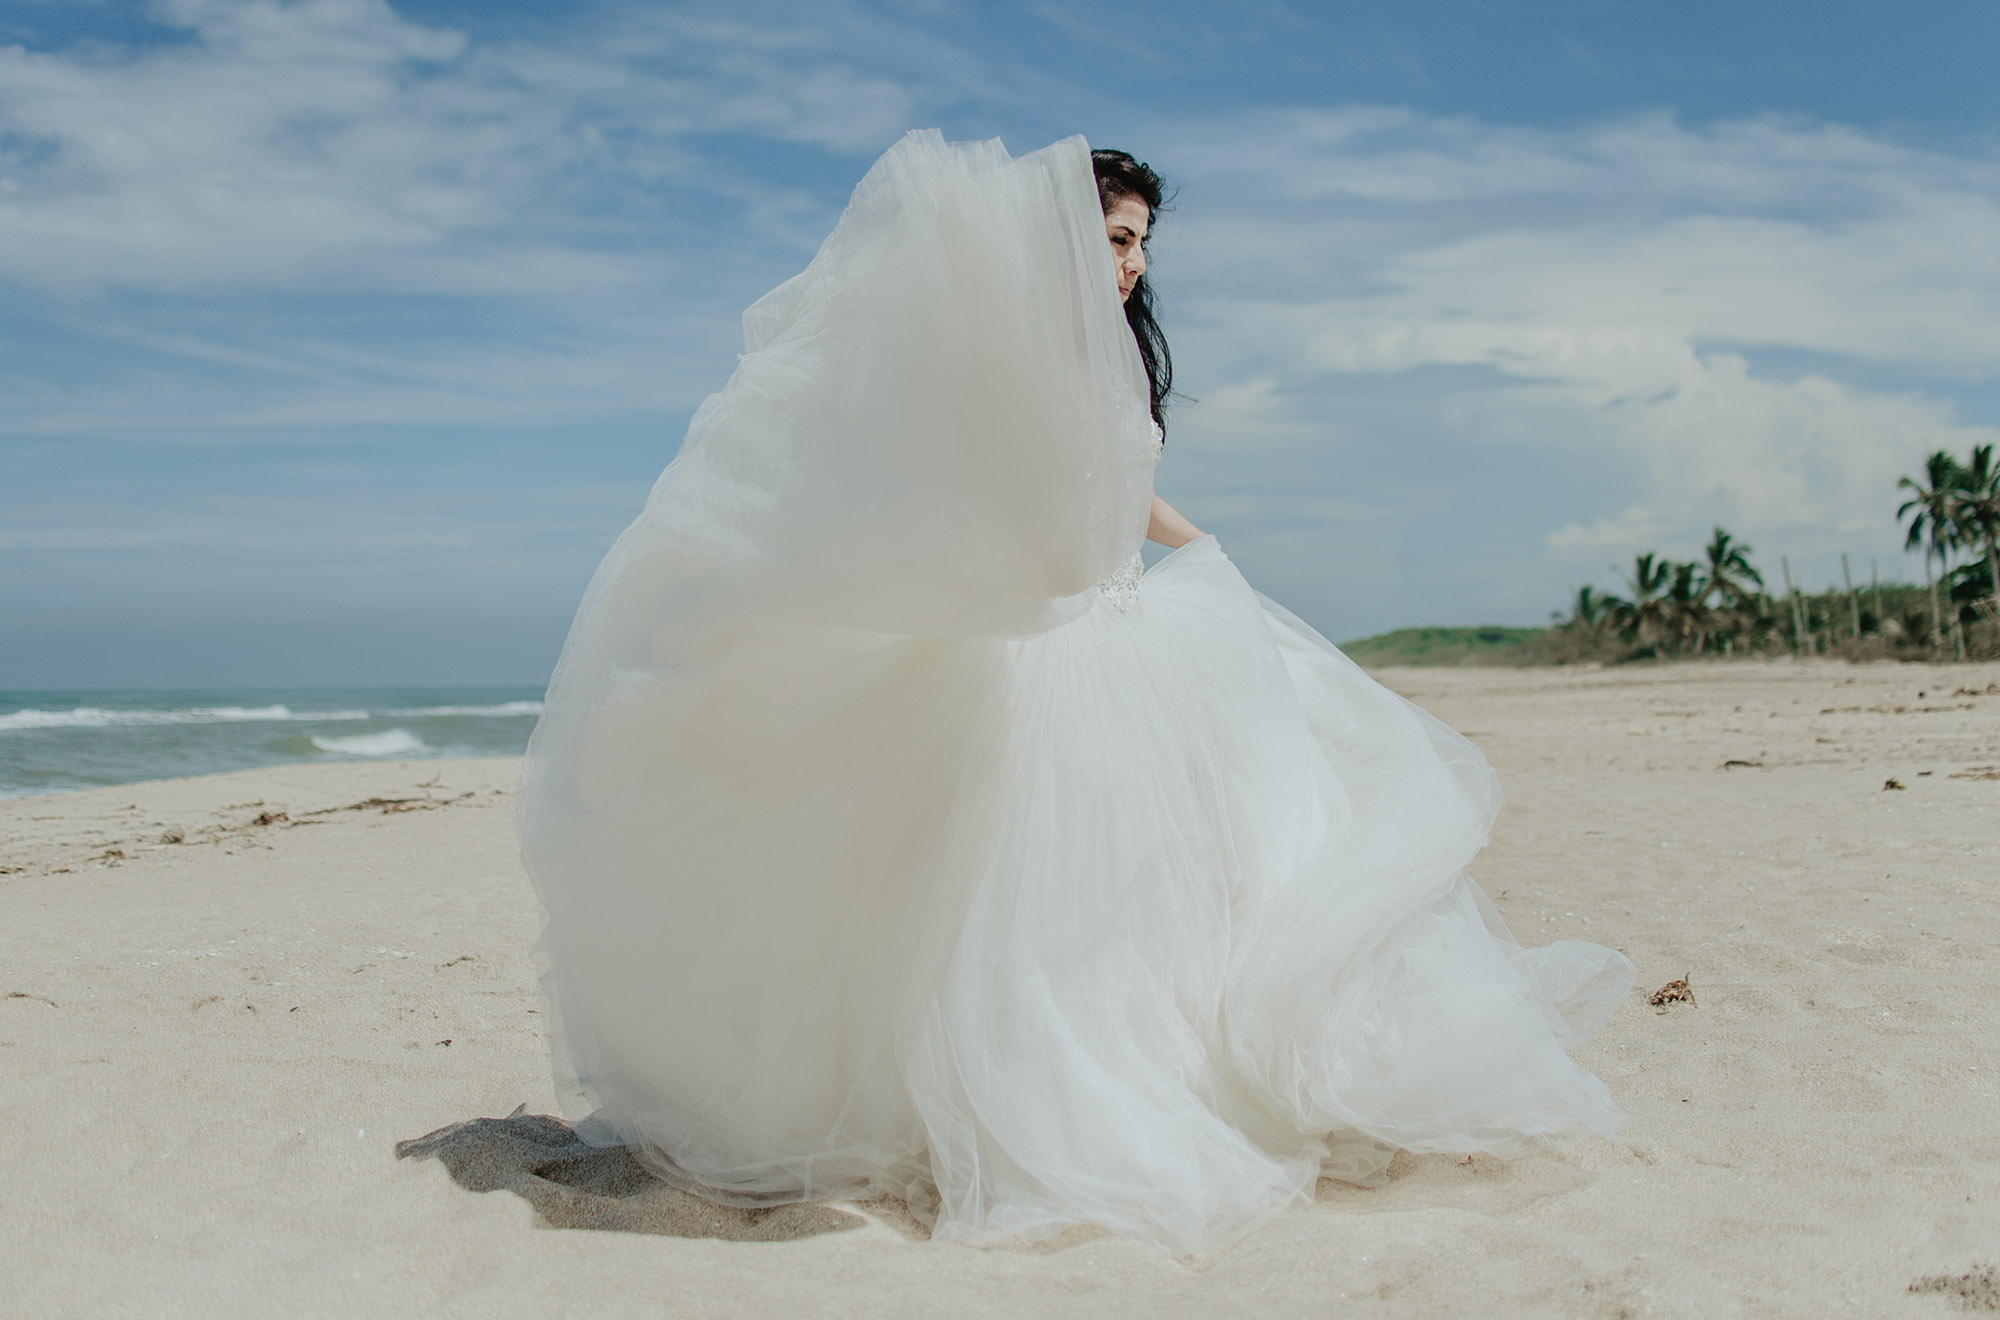 bibi y aldo trash the dress133.jpg